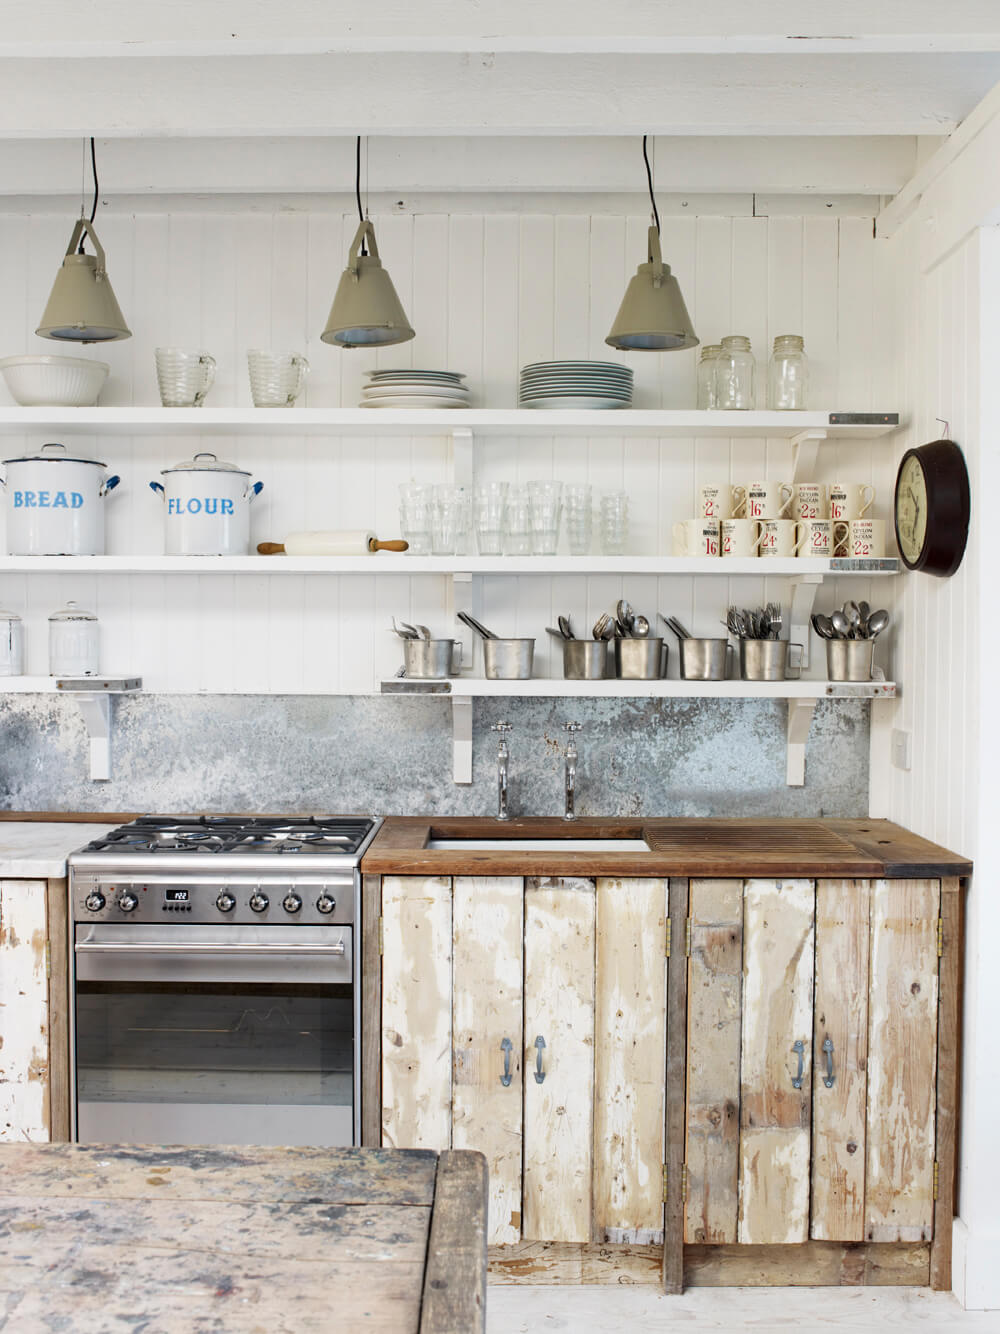 35 Best Farmhouse Kitchen Cabinet Ideas and Designs for 2020 on Farmhouse Rustic Kitchen Ideas  id=73340